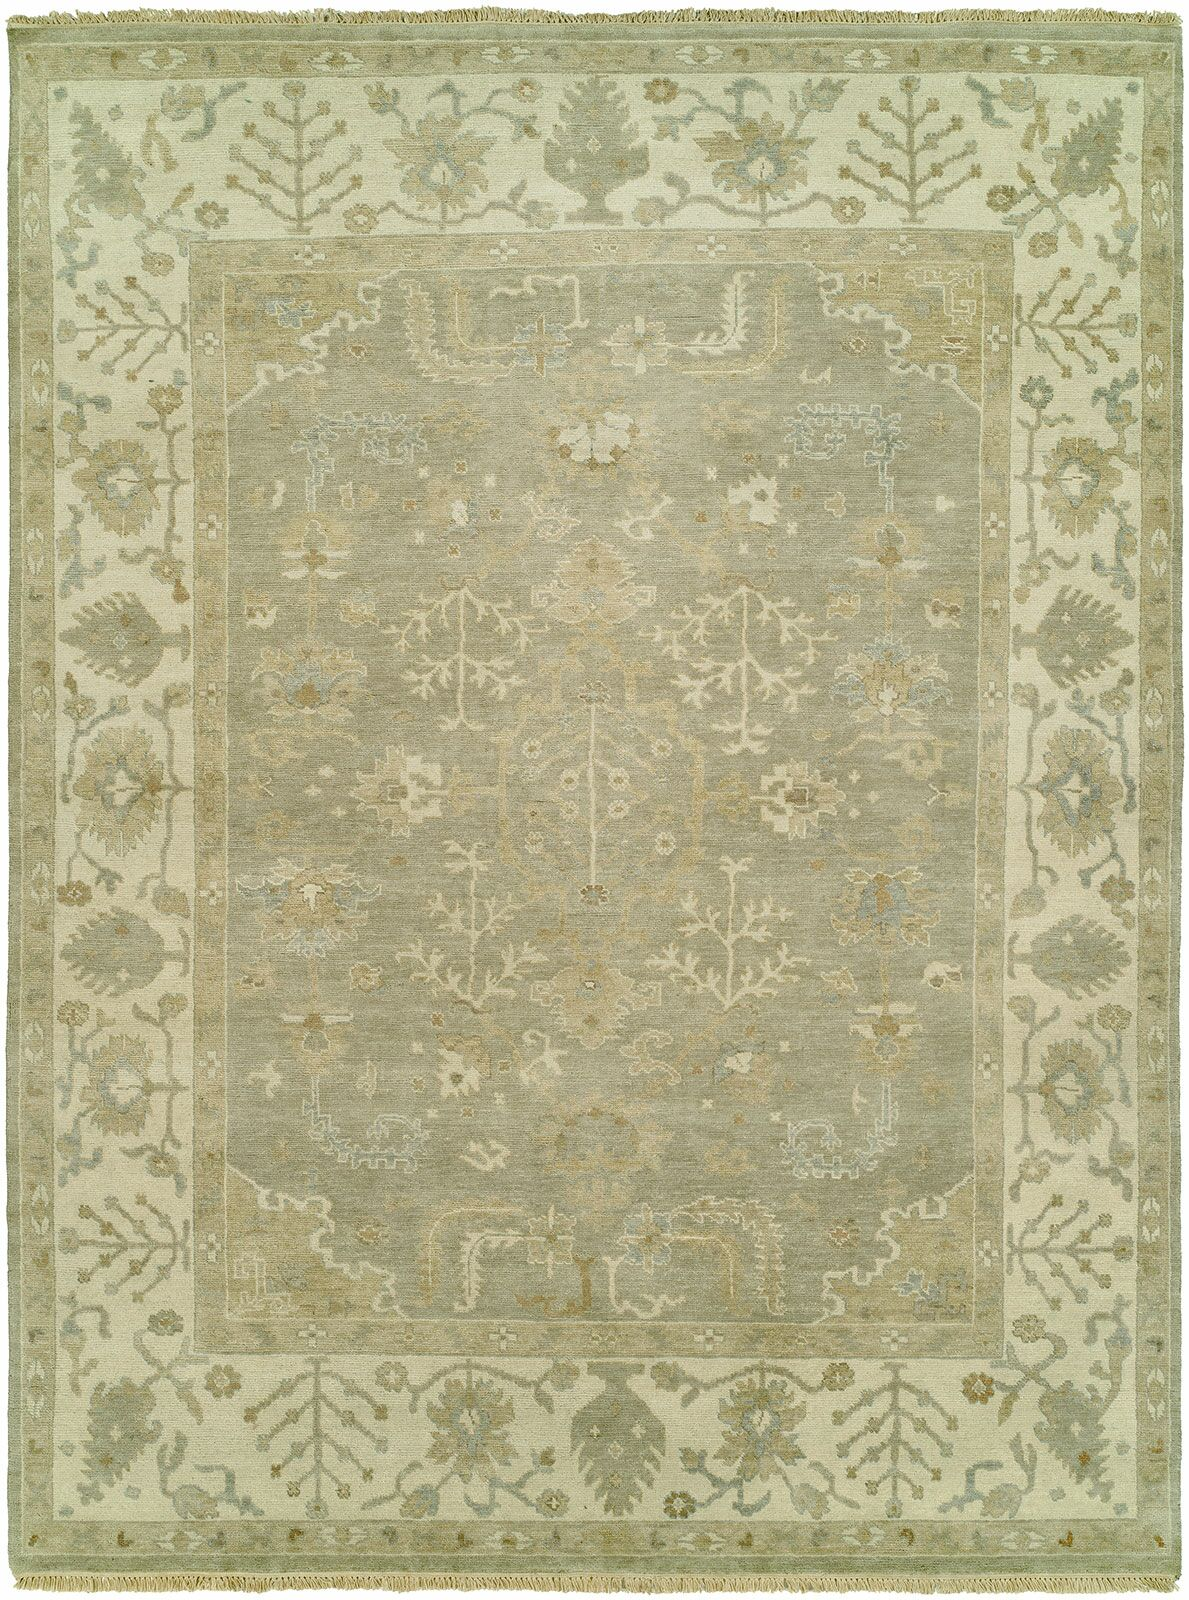 Maynard Hand Knotted Wool Gray Area Rug Rug Size: Rectangle 6' x 9'